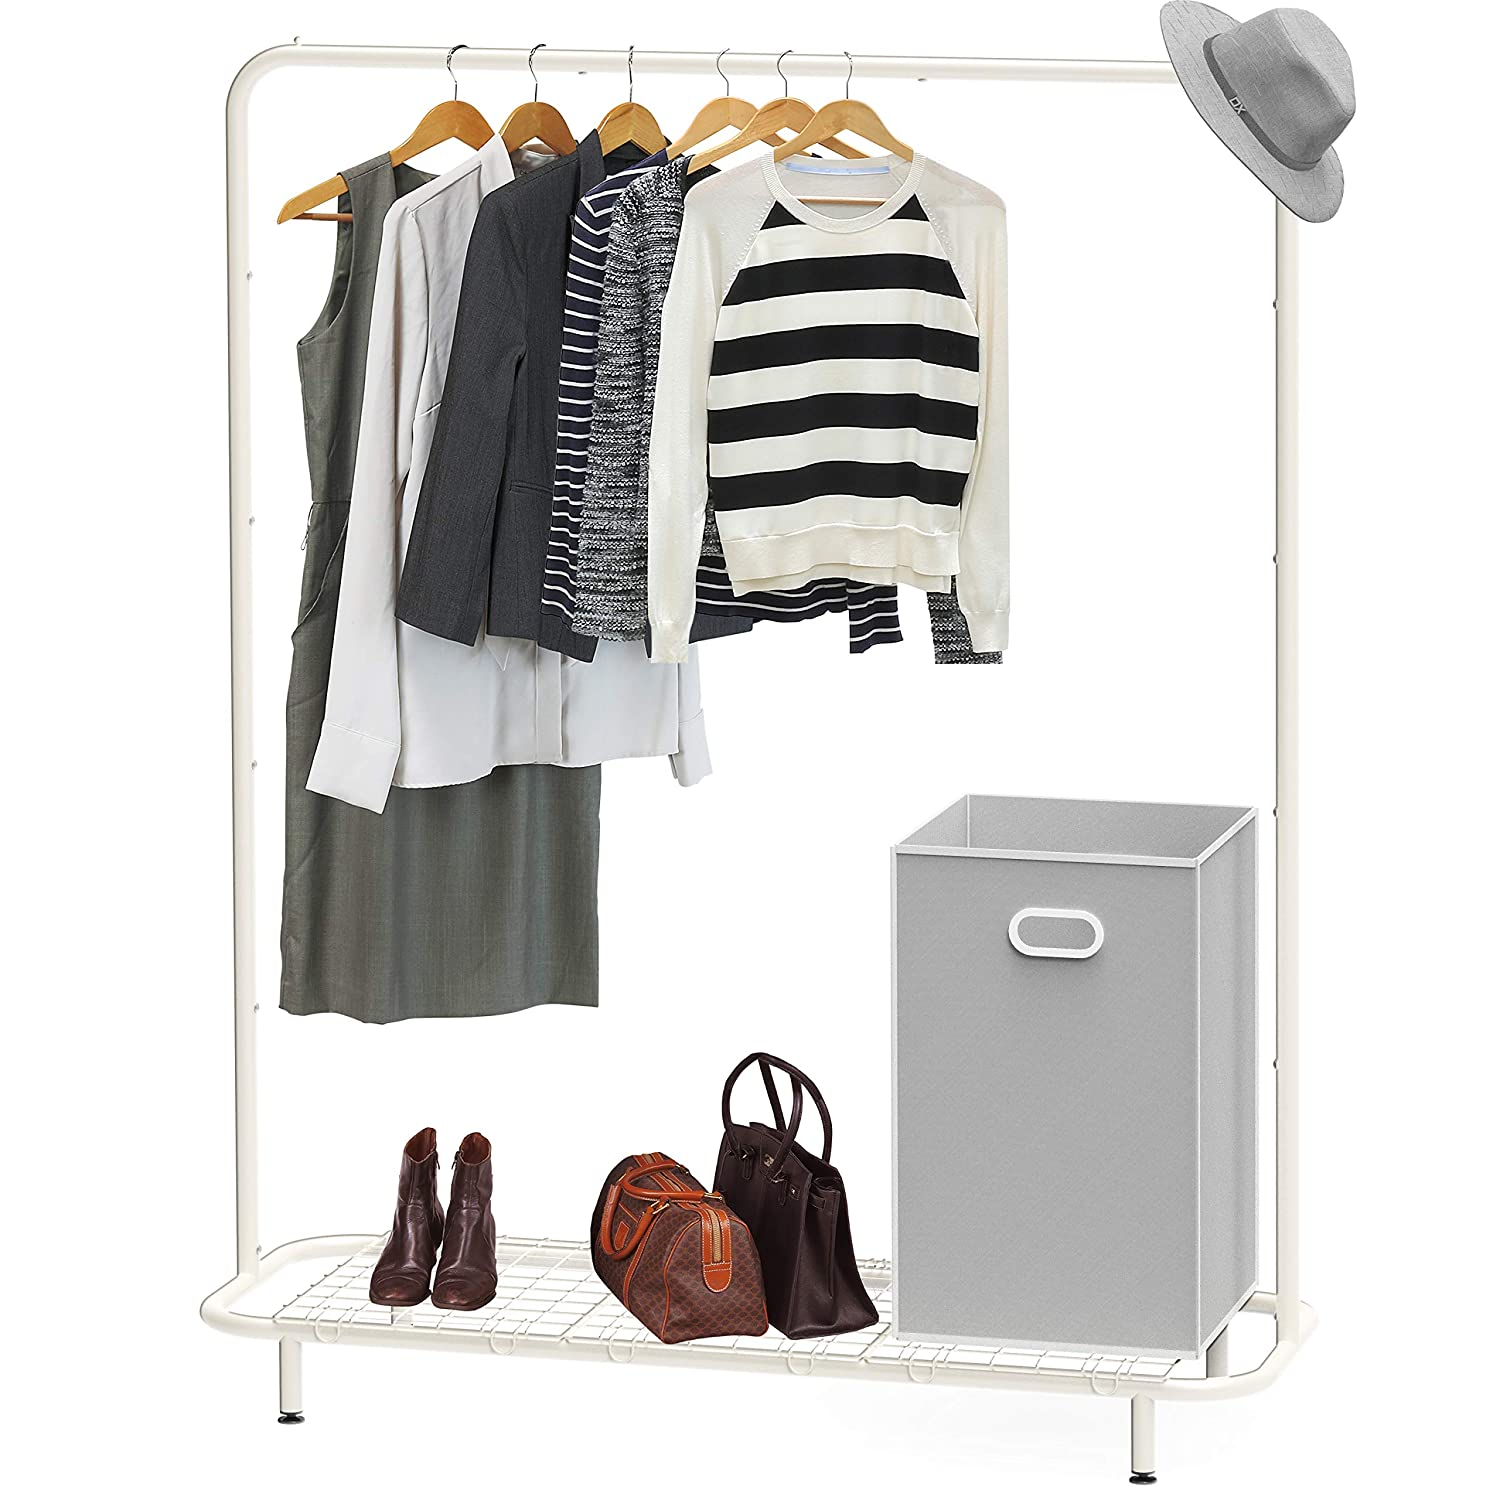 Simple Houseware Industrial Pipe Clothing Garment Rack with Bottom Shelves, White